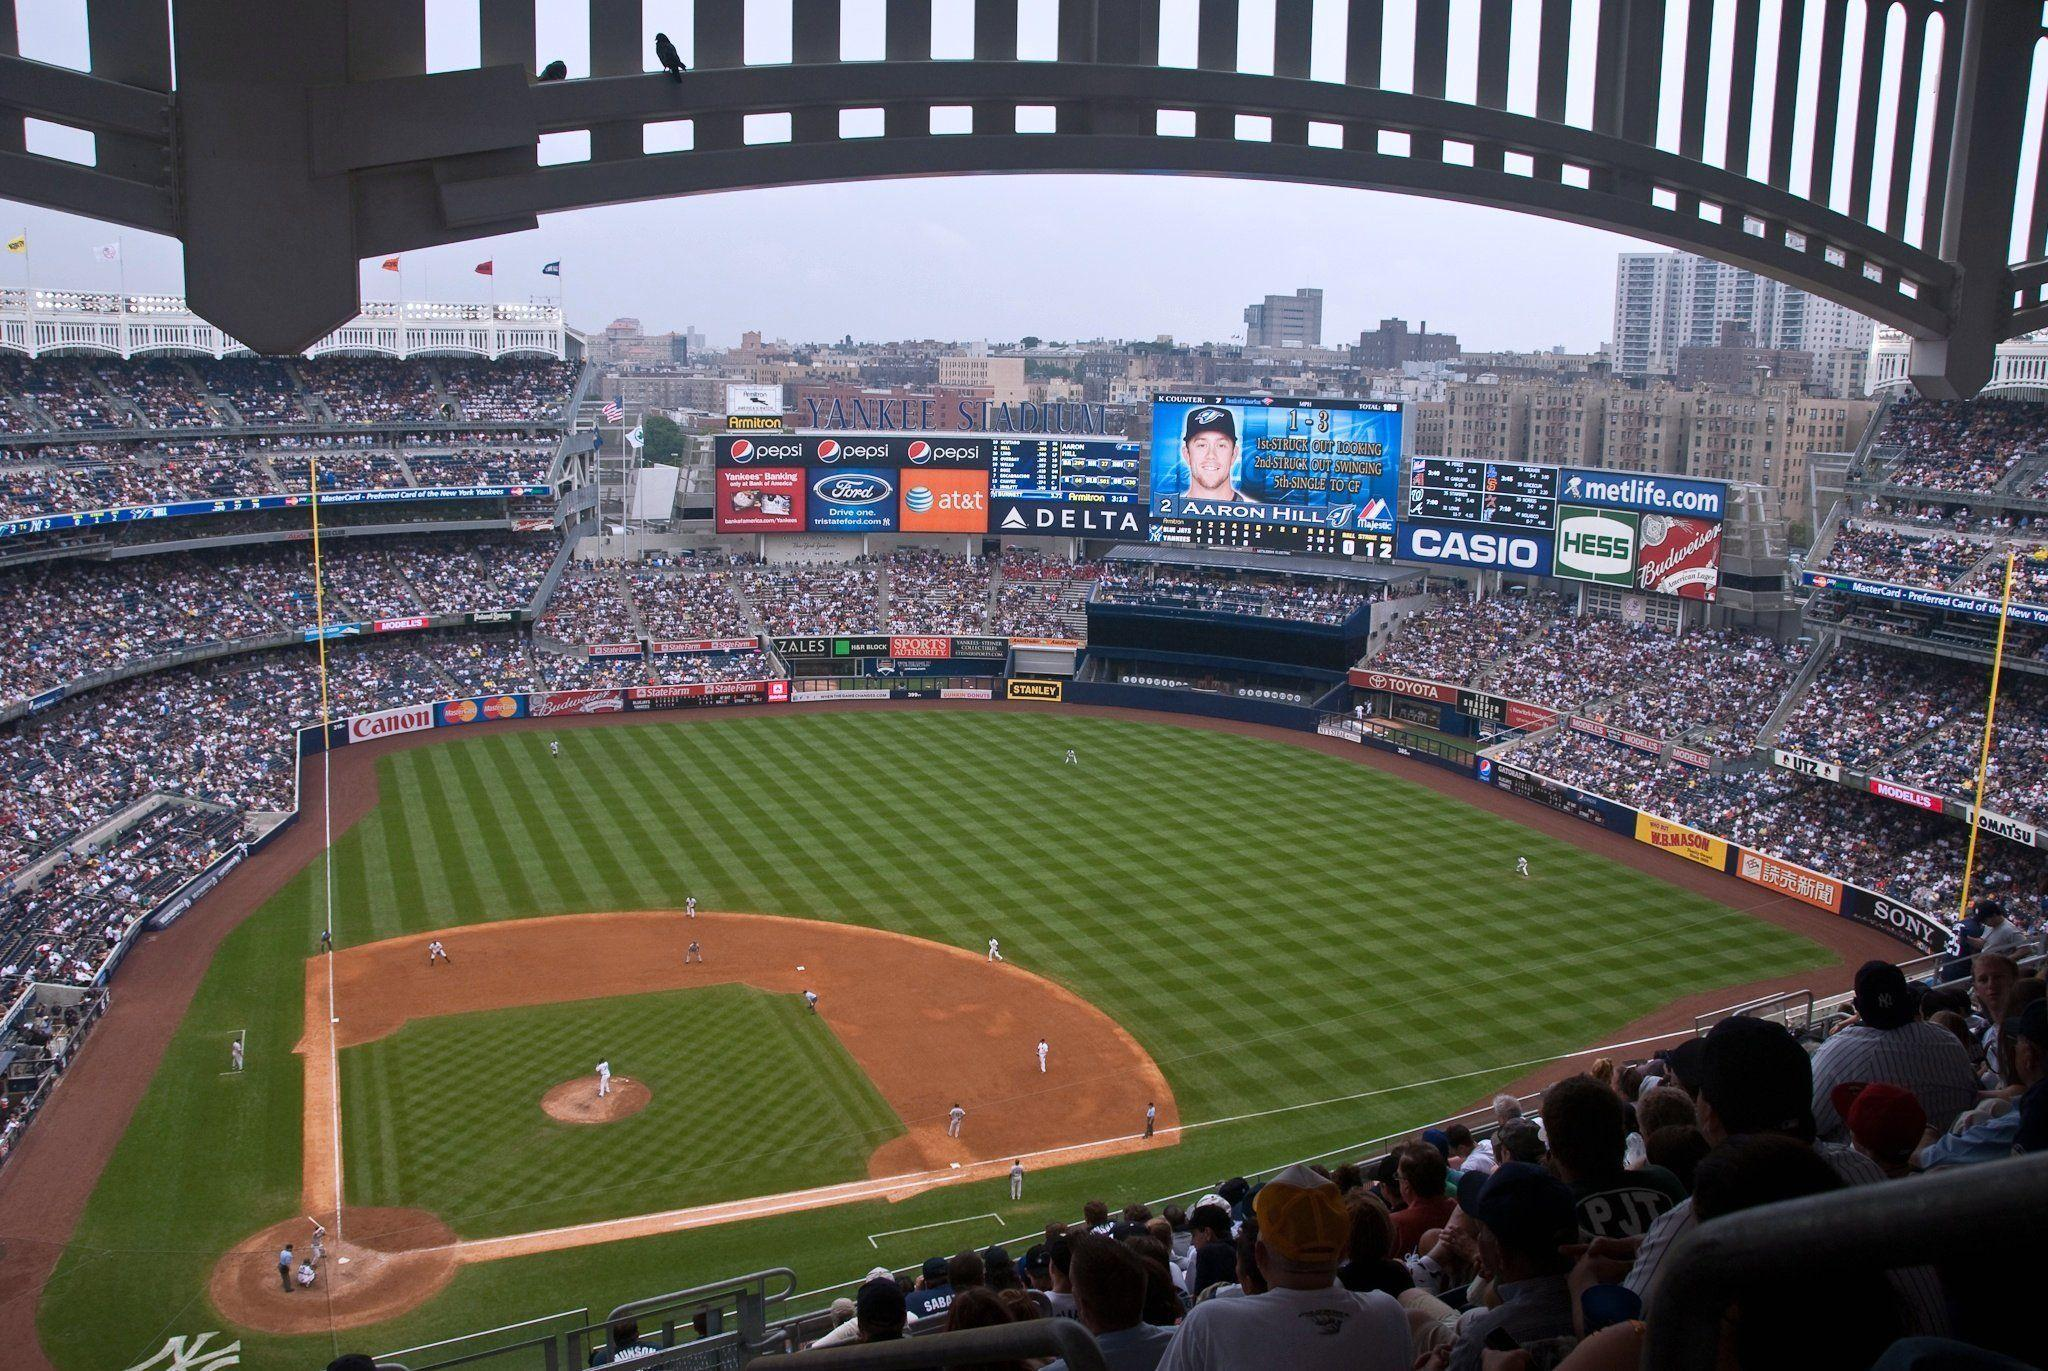 an overview of the yankee stadium of the american baseball history Was honored at yankee stadium on the 1985 american league mvp set records compiled one of the most dominating seasons in baseball history in 1978 and became.